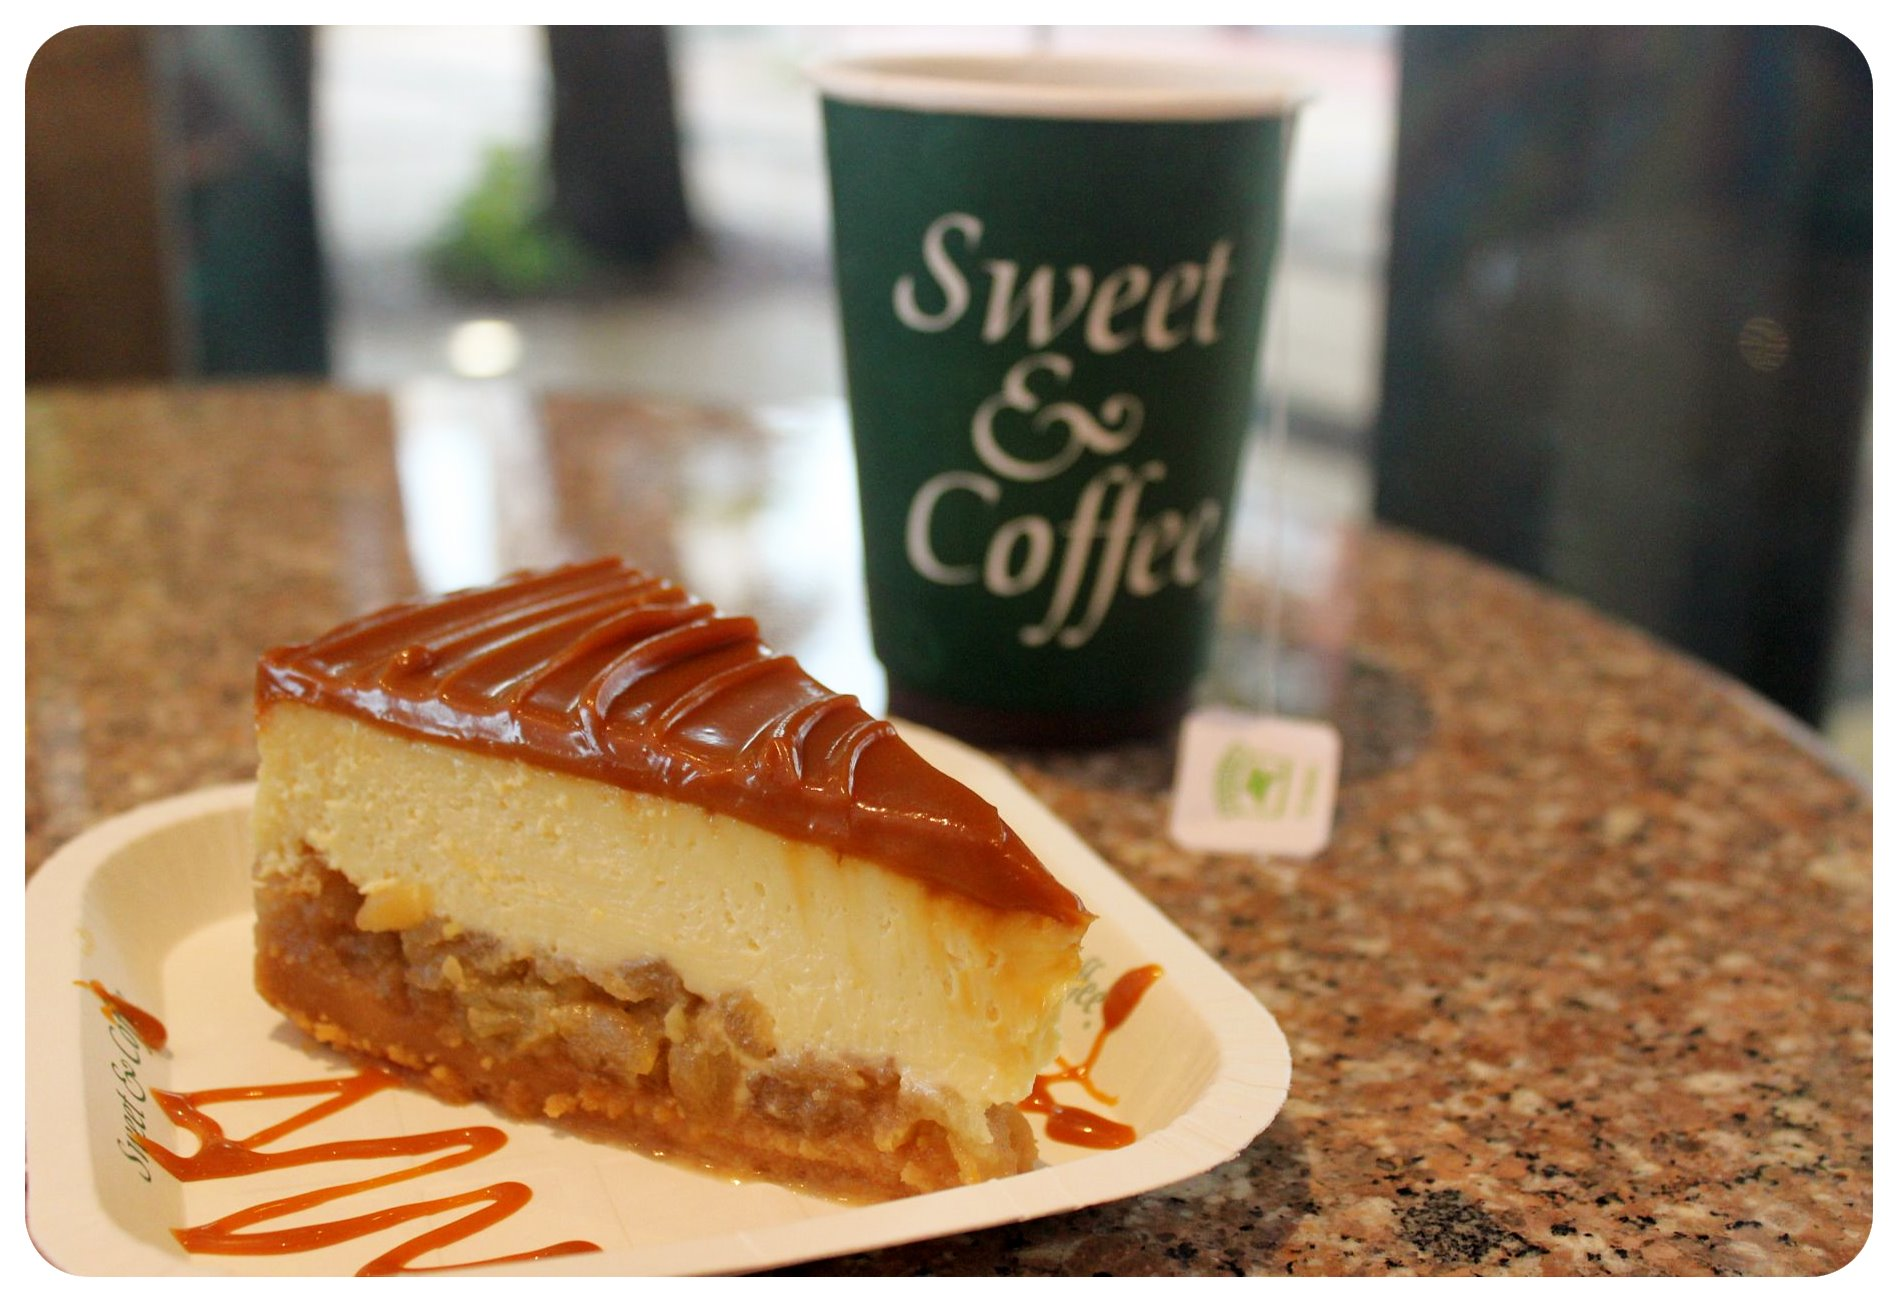 guayaquil sweet & coffee